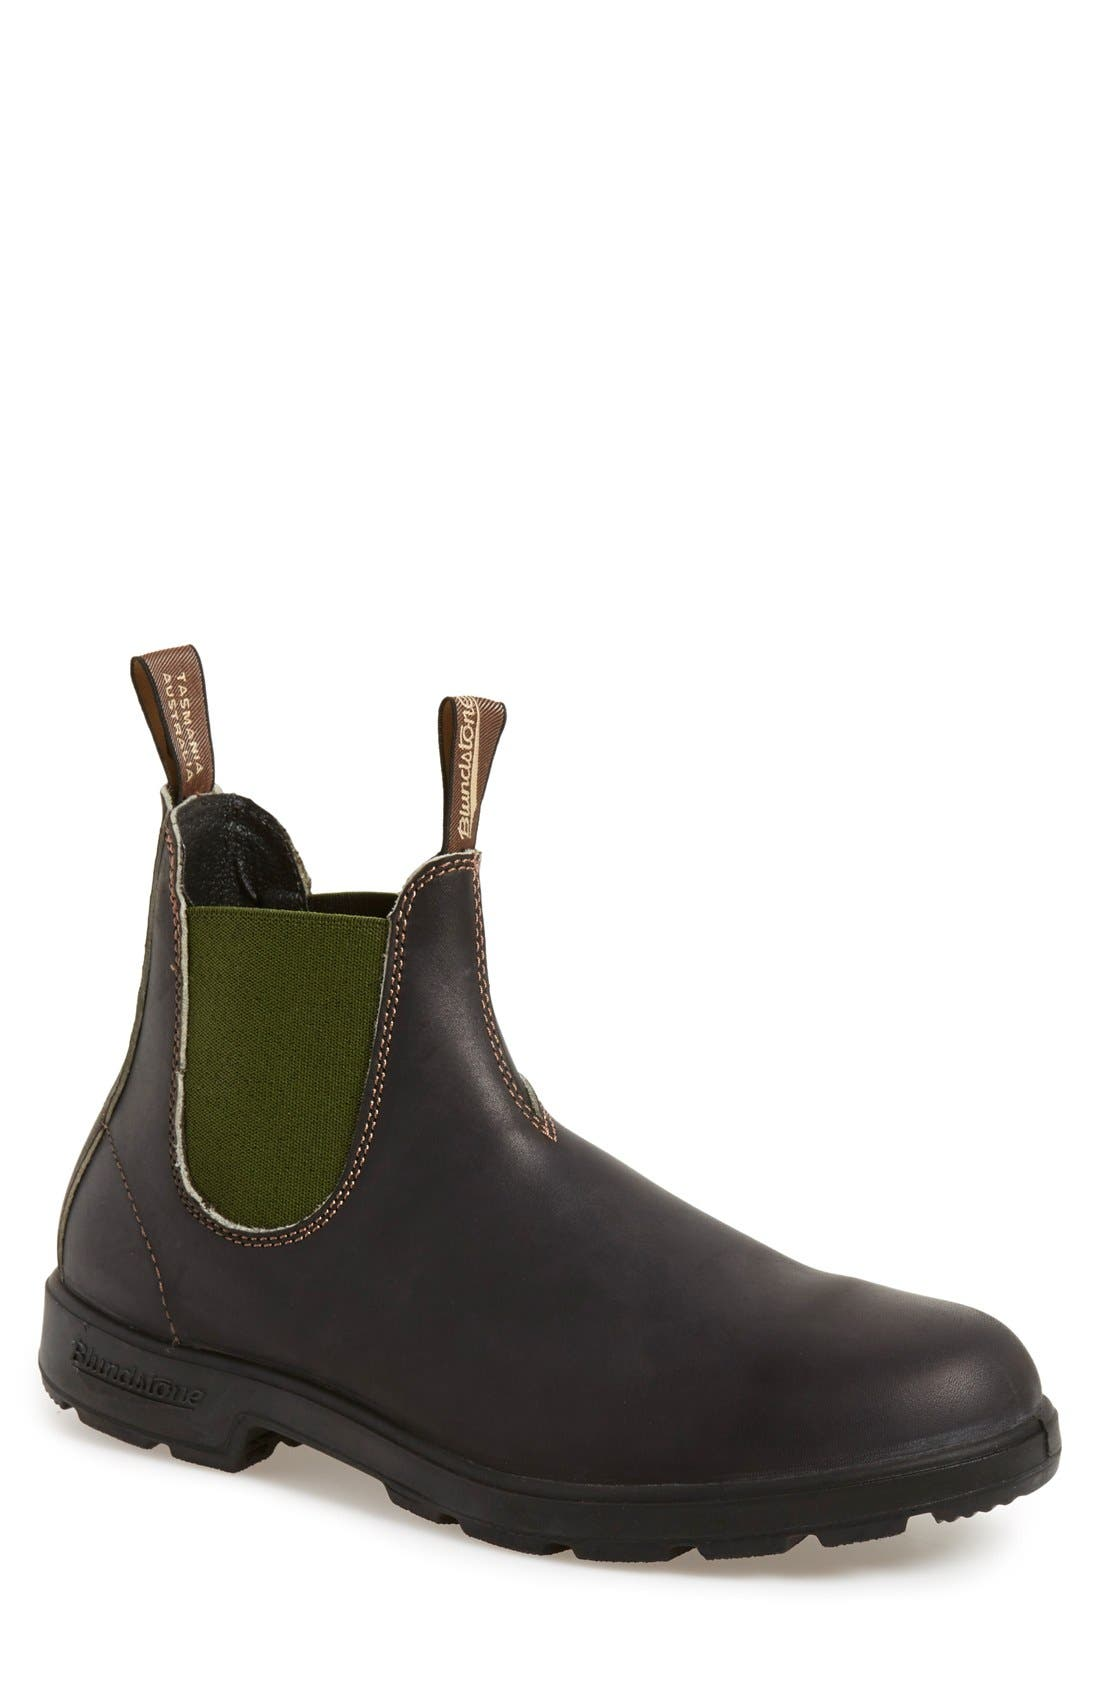 Footwear Chelsea Boot,                             Main thumbnail 1, color,                             STOUT BROWN